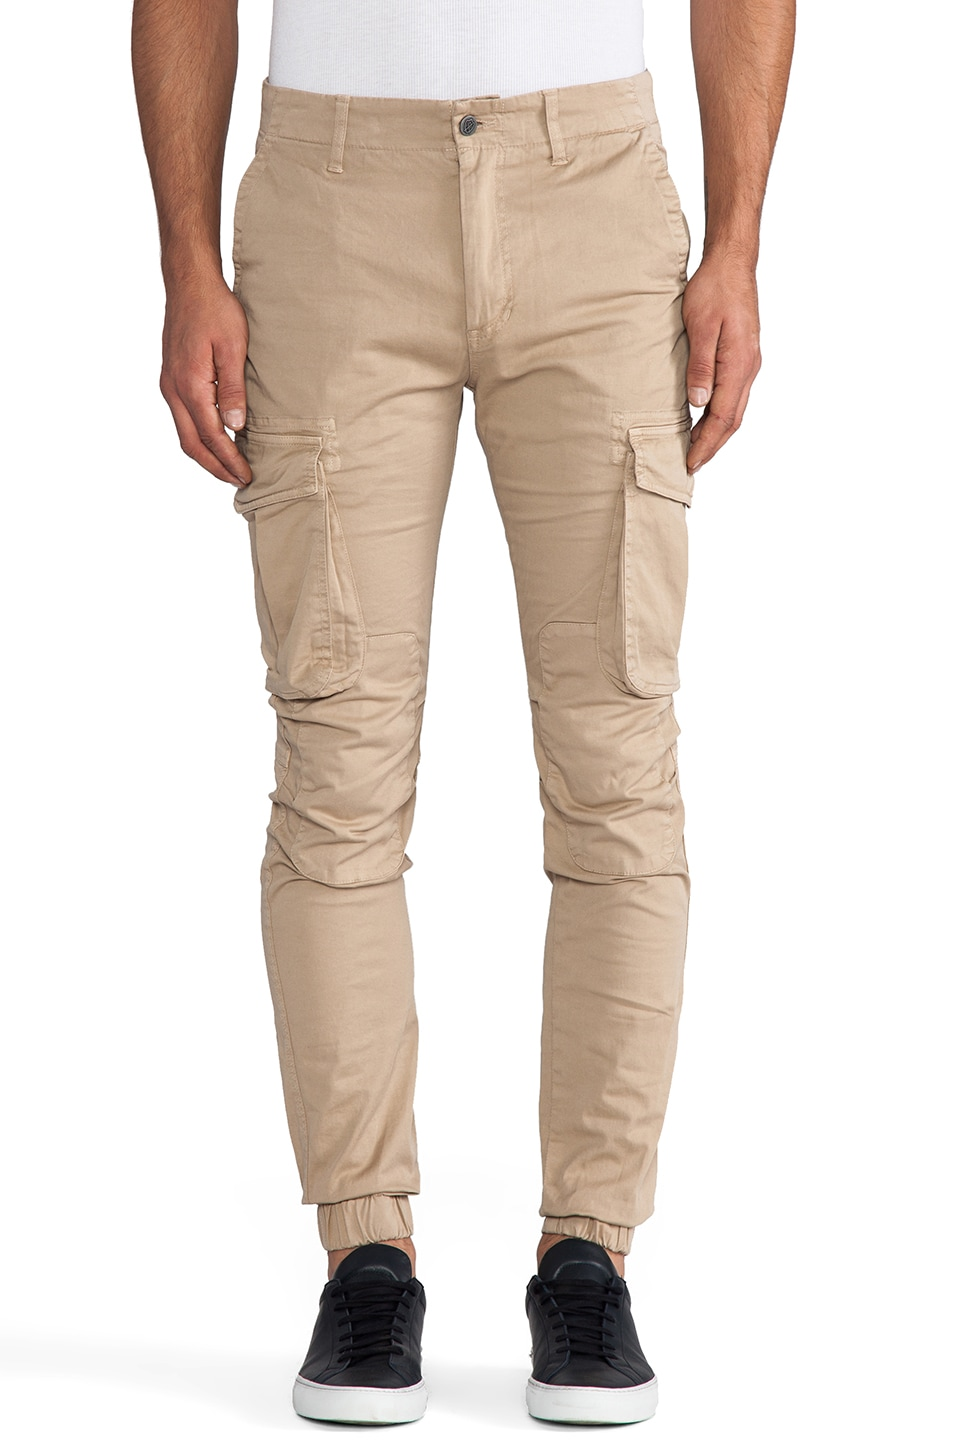 Zanerobe Buckshot in Tan